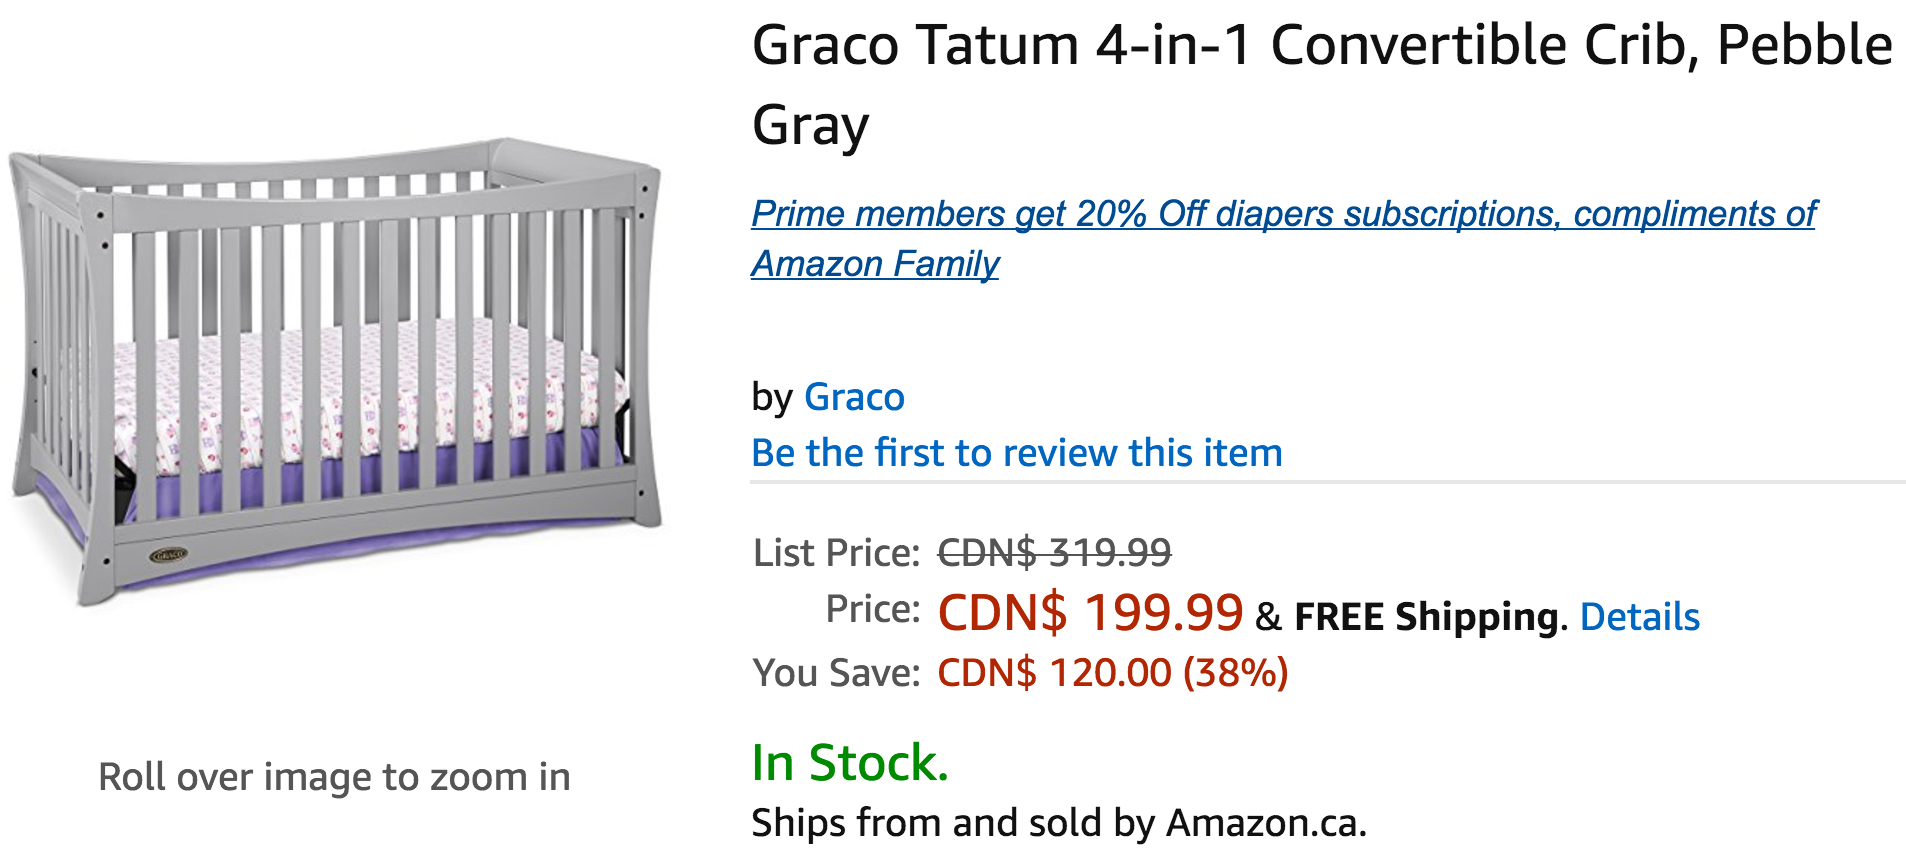 Graco baby is a baby product company based in America that is operated and owned by Newell Brands. The company was founded in by Russell Gray and Robert Cone hence the name Graco.